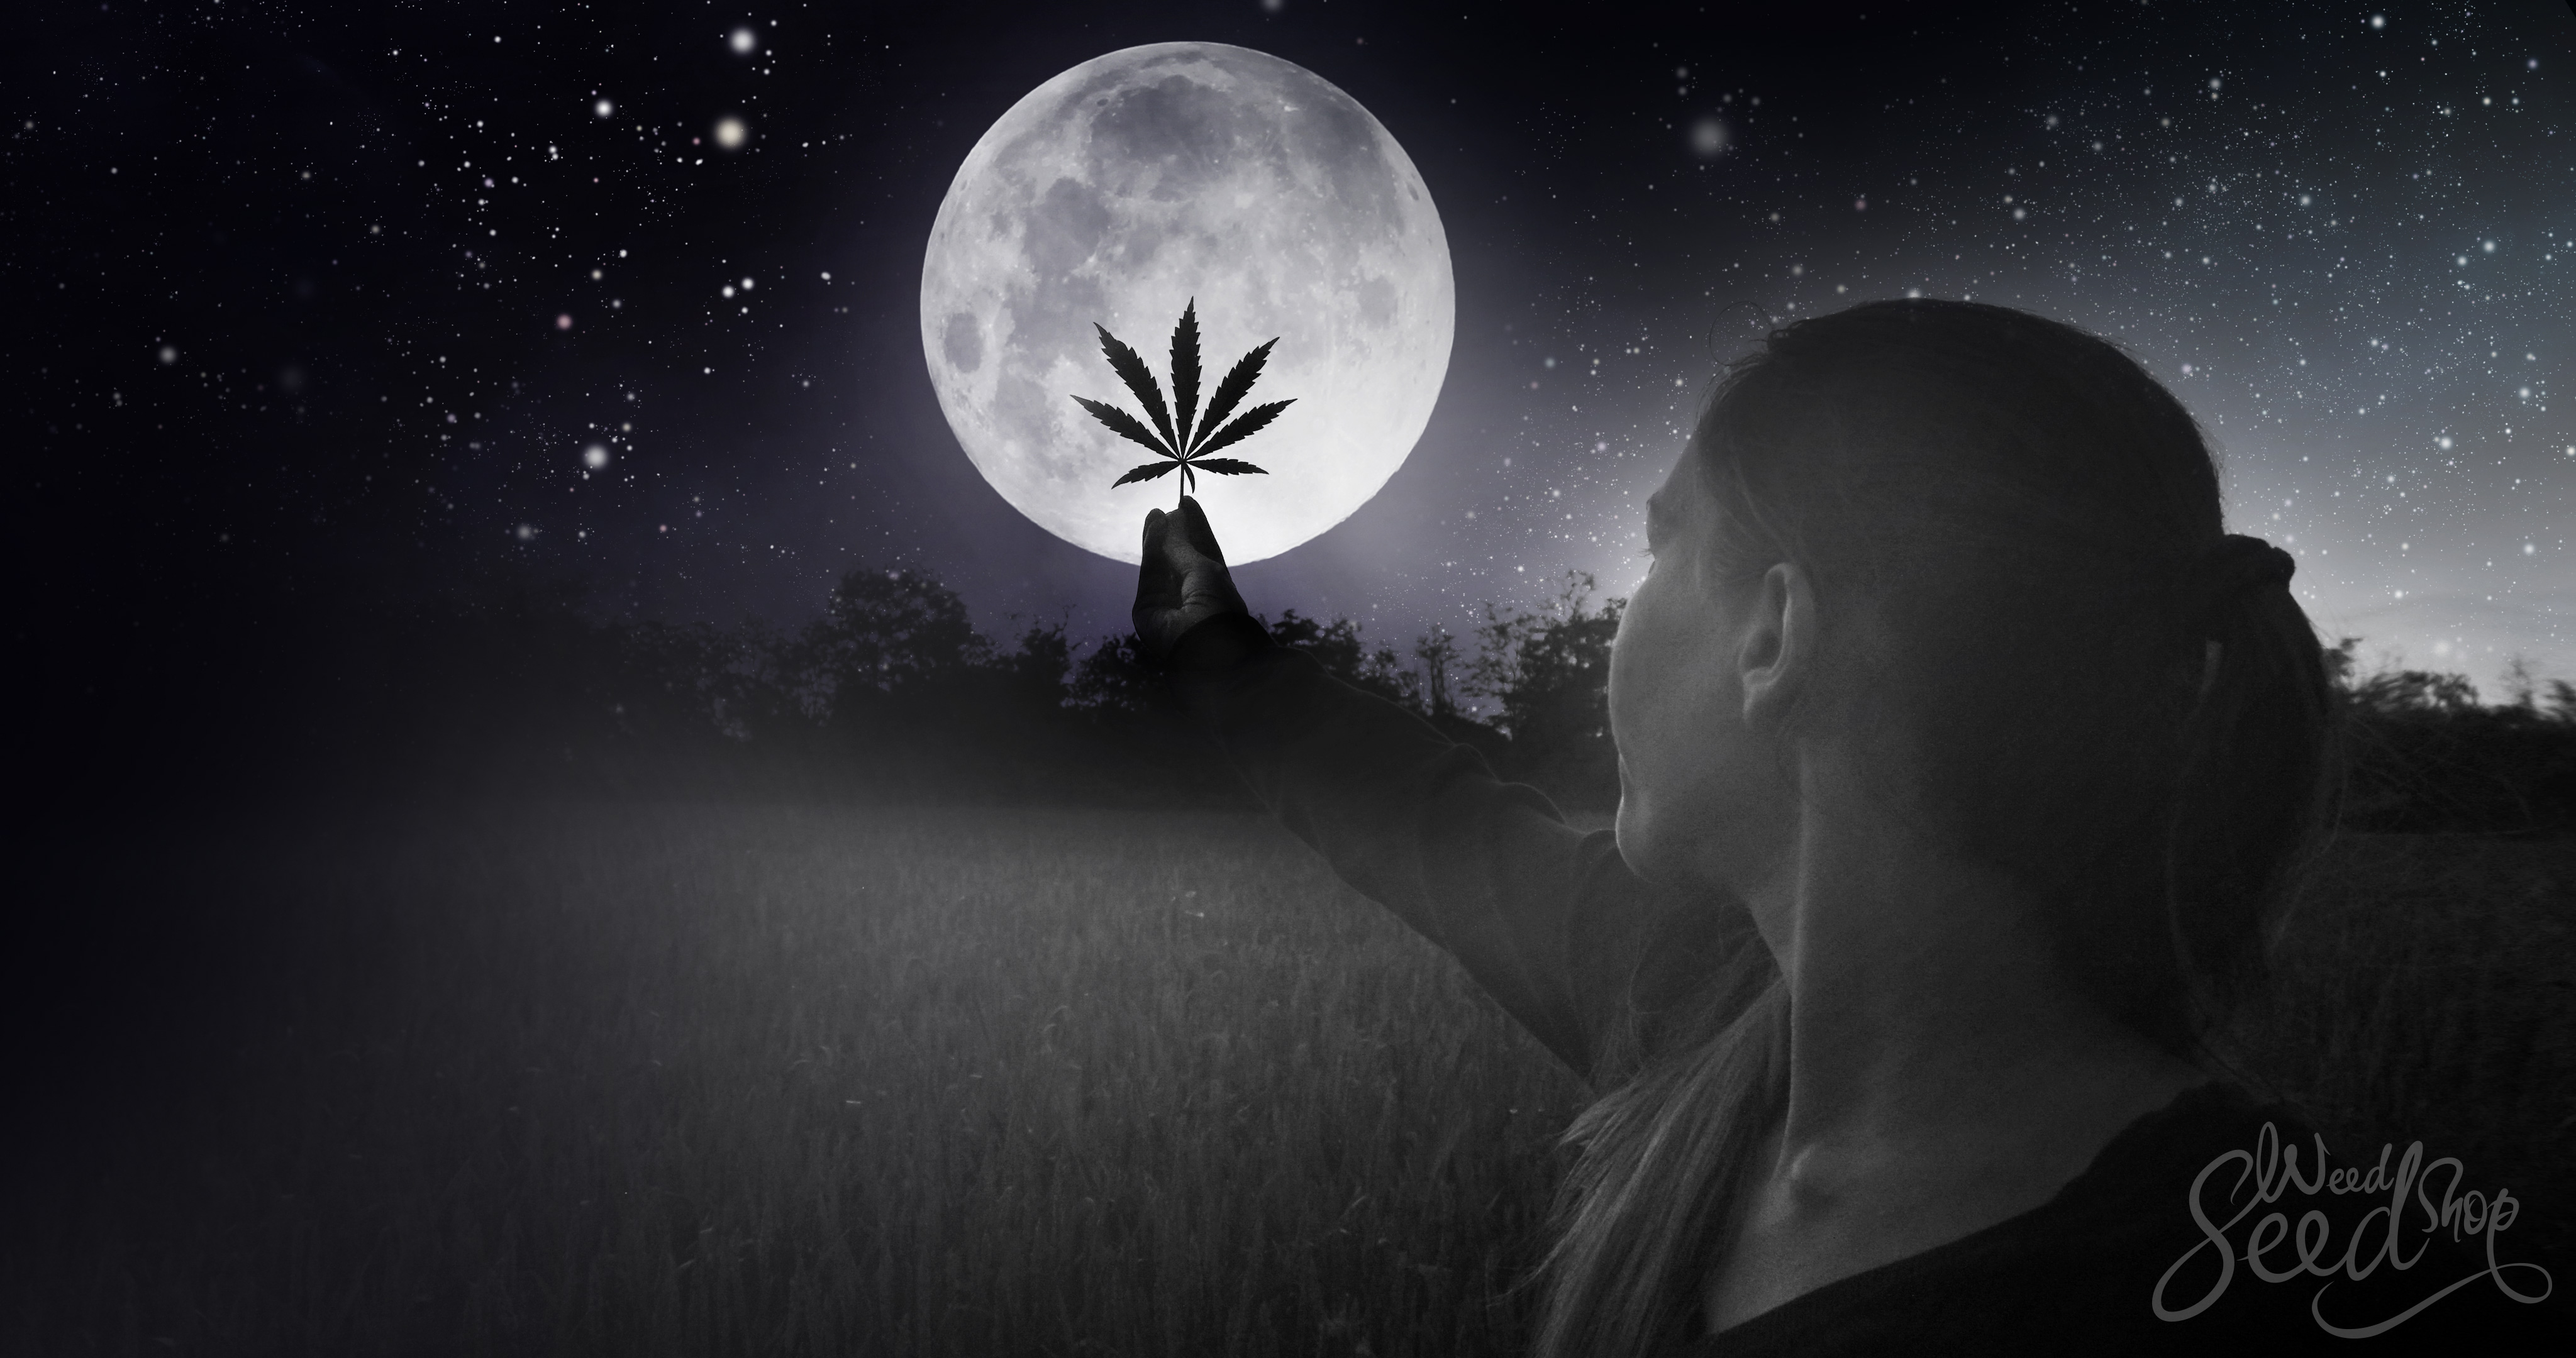 Menstrual Marijuana: Visiting a weed witch